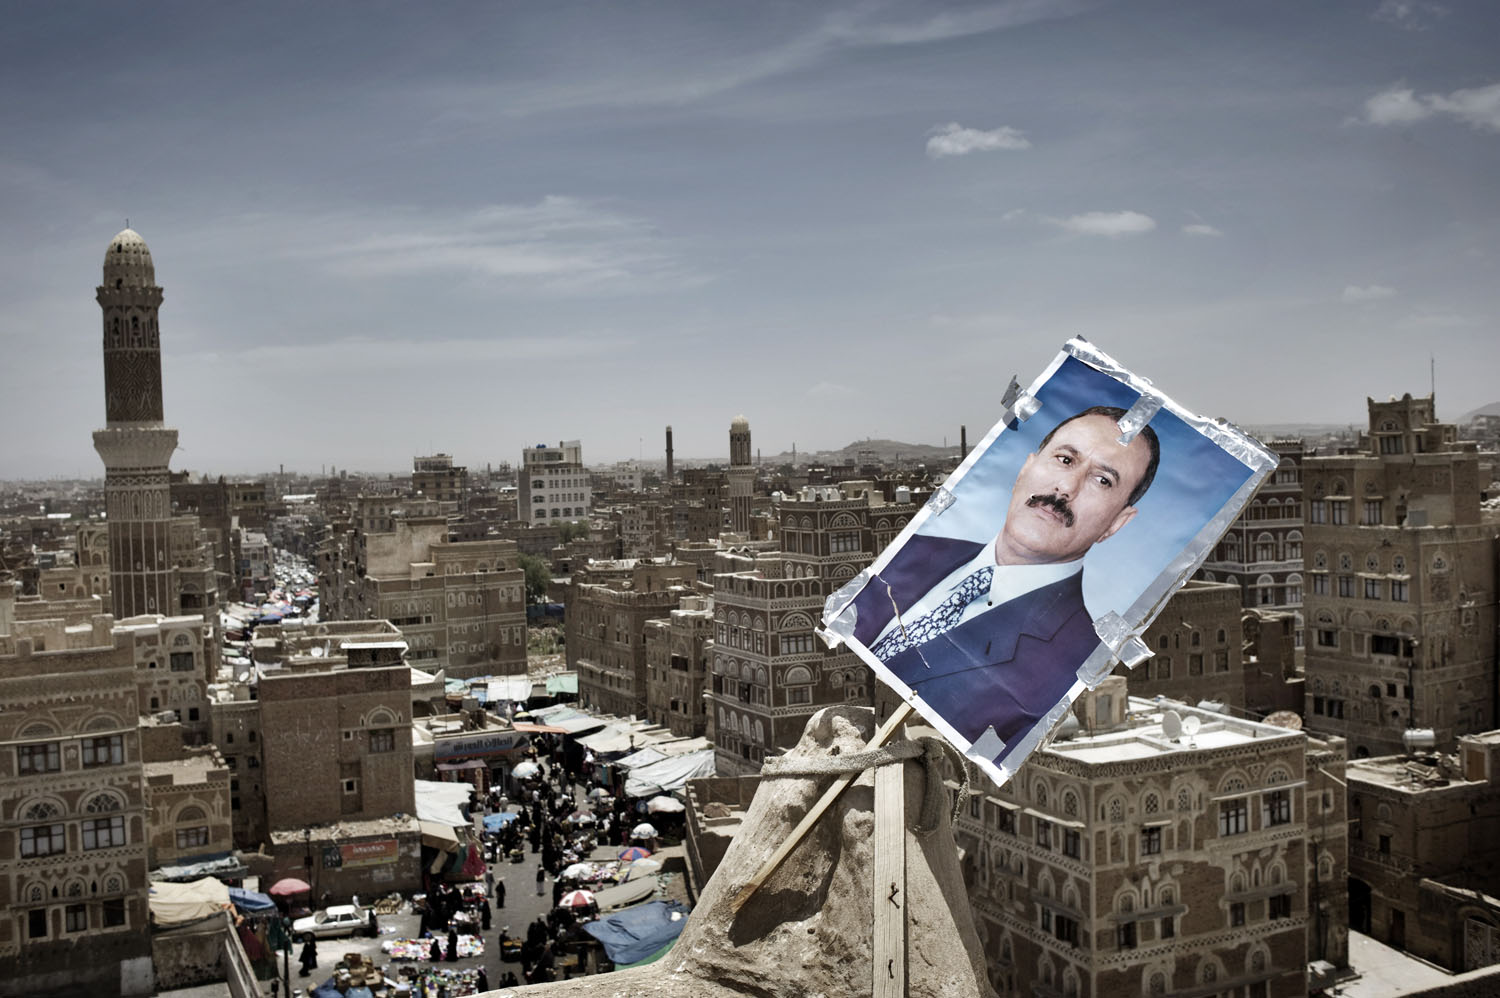 A poster of Yemen's President Ali Abdullah Saleh is seen at the roof of a house at the old town of Sana'a, May 18, 2011.